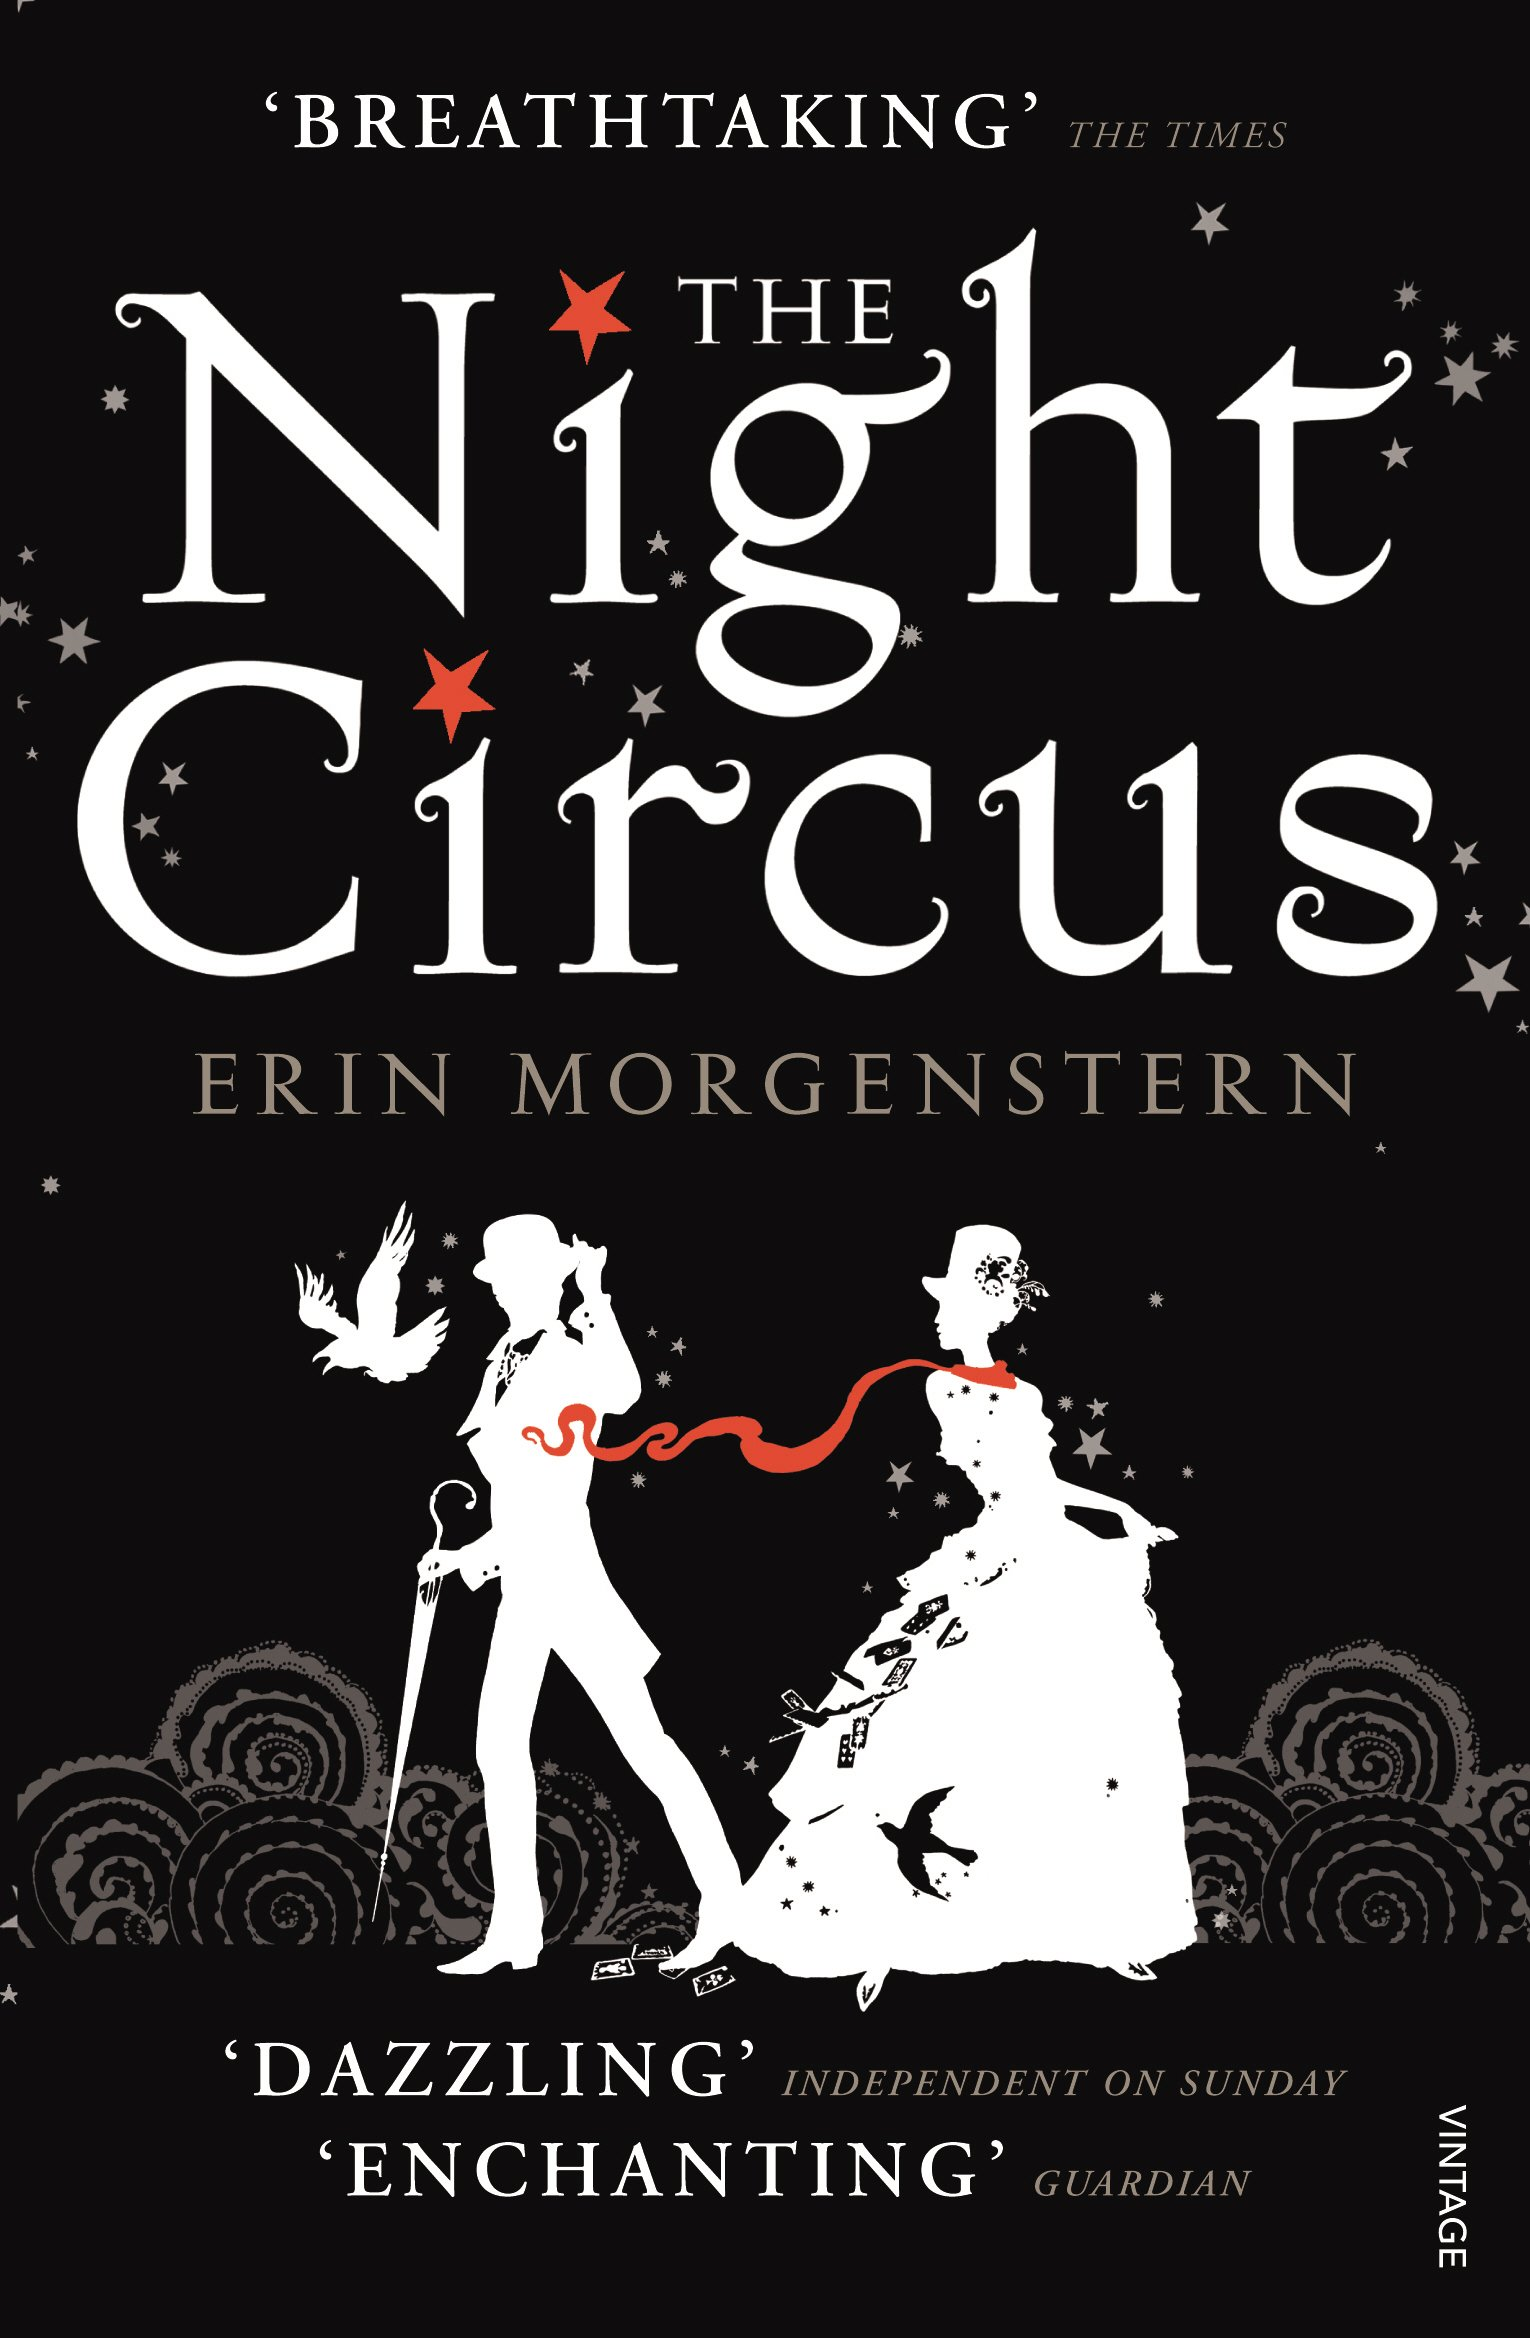 The Night Circus: Amazon.co.uk: Morgenstern, Erin: 9780099554790: Books